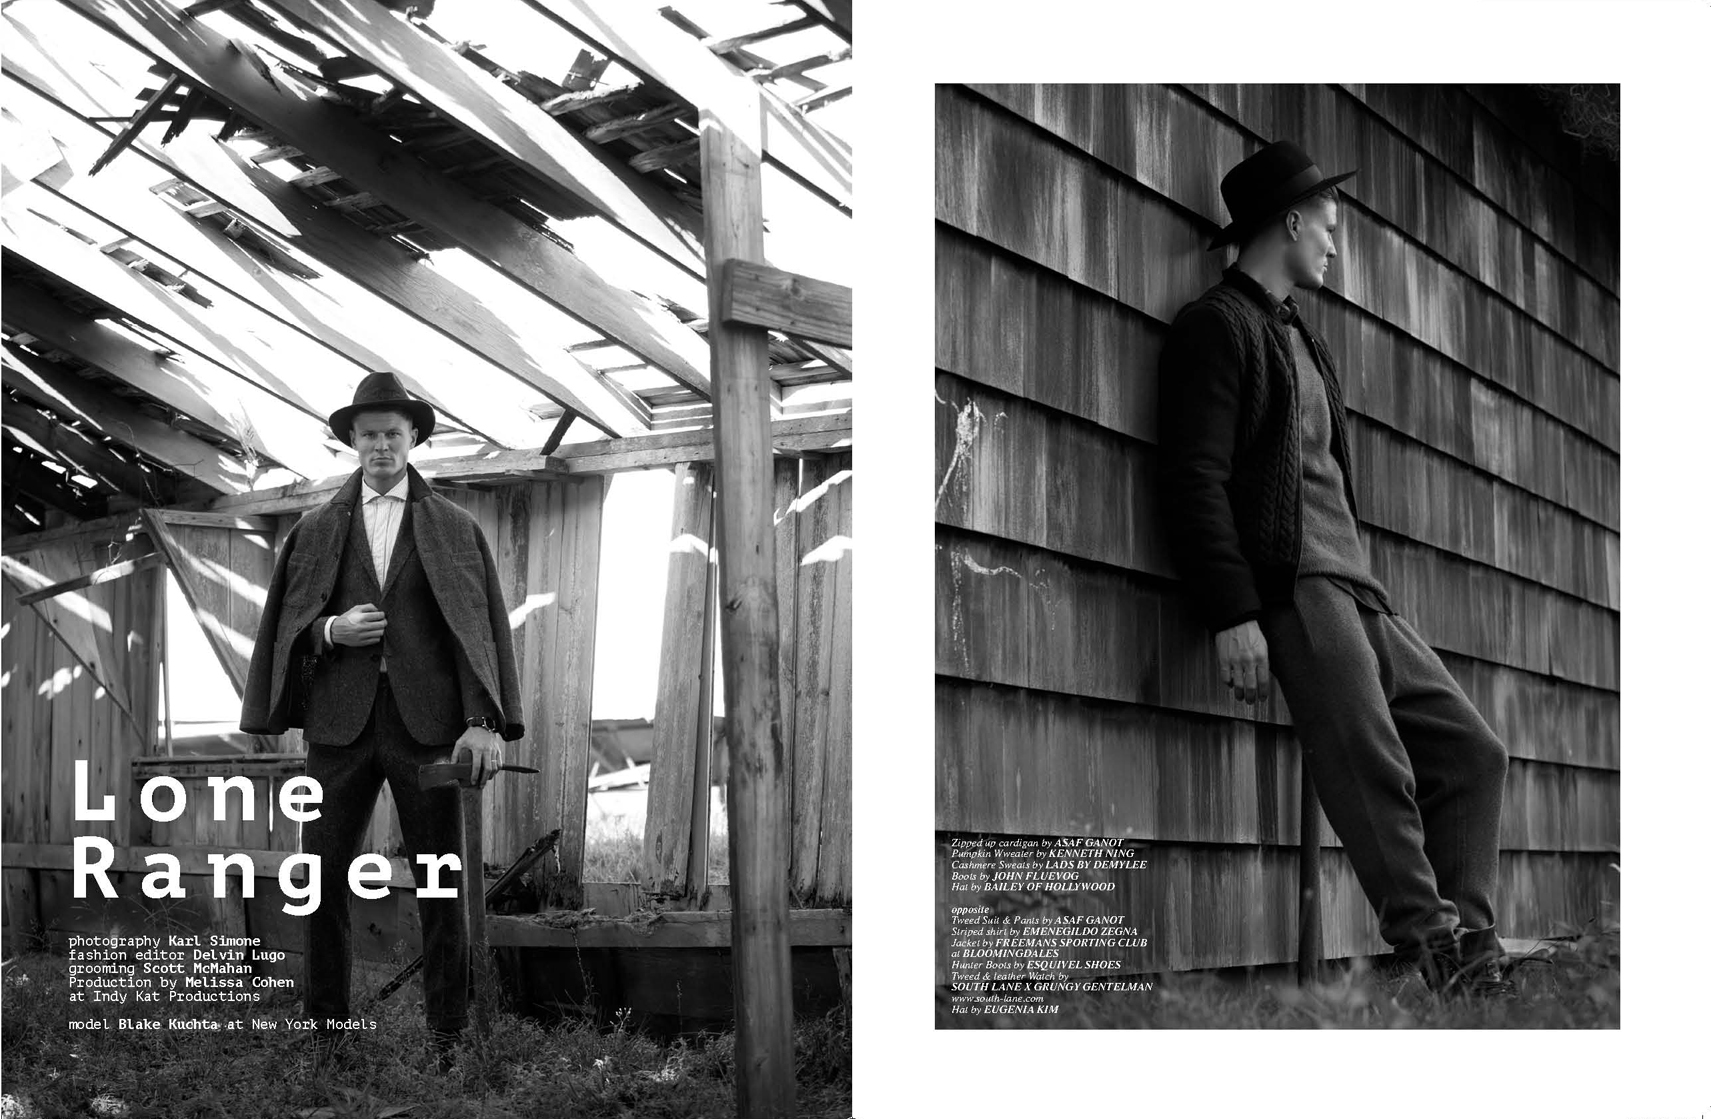 "Fashion photographer Karl Simone delivered exquisite fine captures for Client Style Guide USA in ""Lone Ranger"" starred by Blake Kuchta from New York Models, styled by Delvin Lugo in luxury garments. Grooming by Scott McMahan and Production by Melissa Cohen at indy Kat Productions."